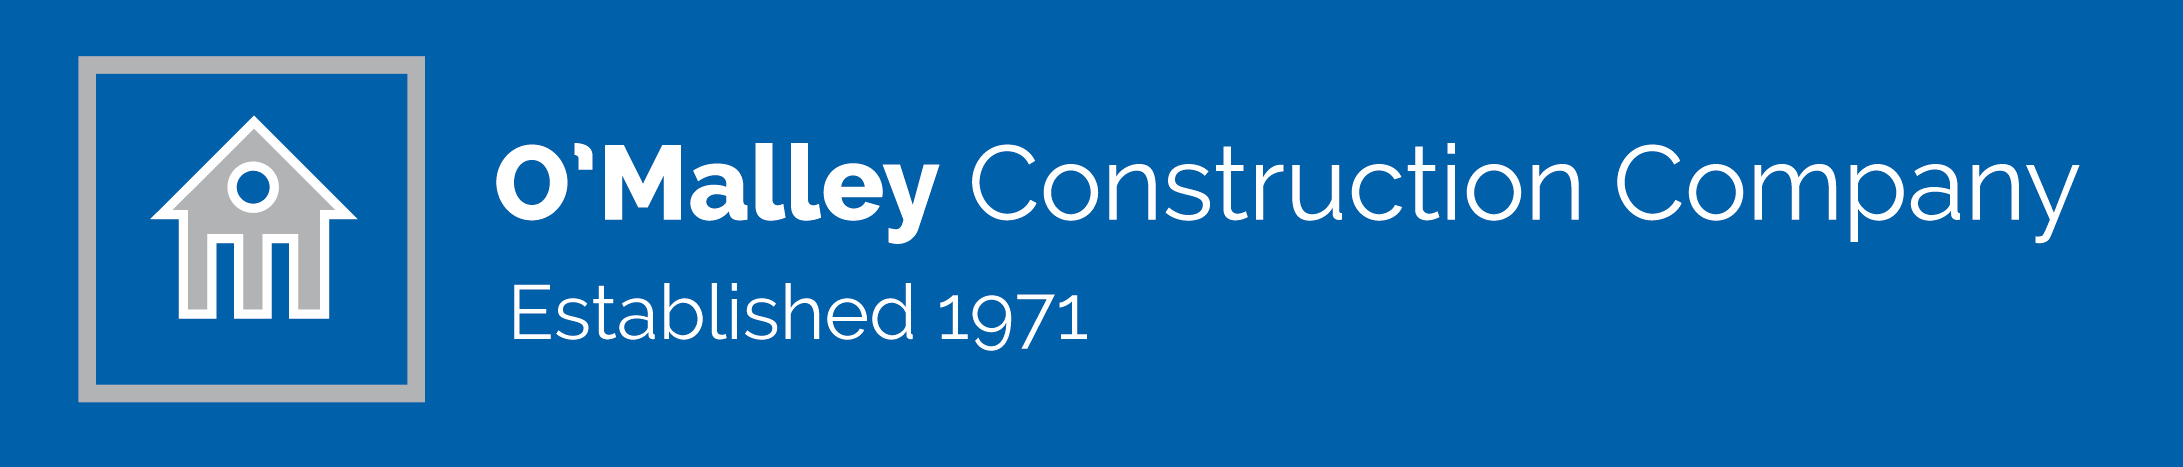 O'Malley Construction